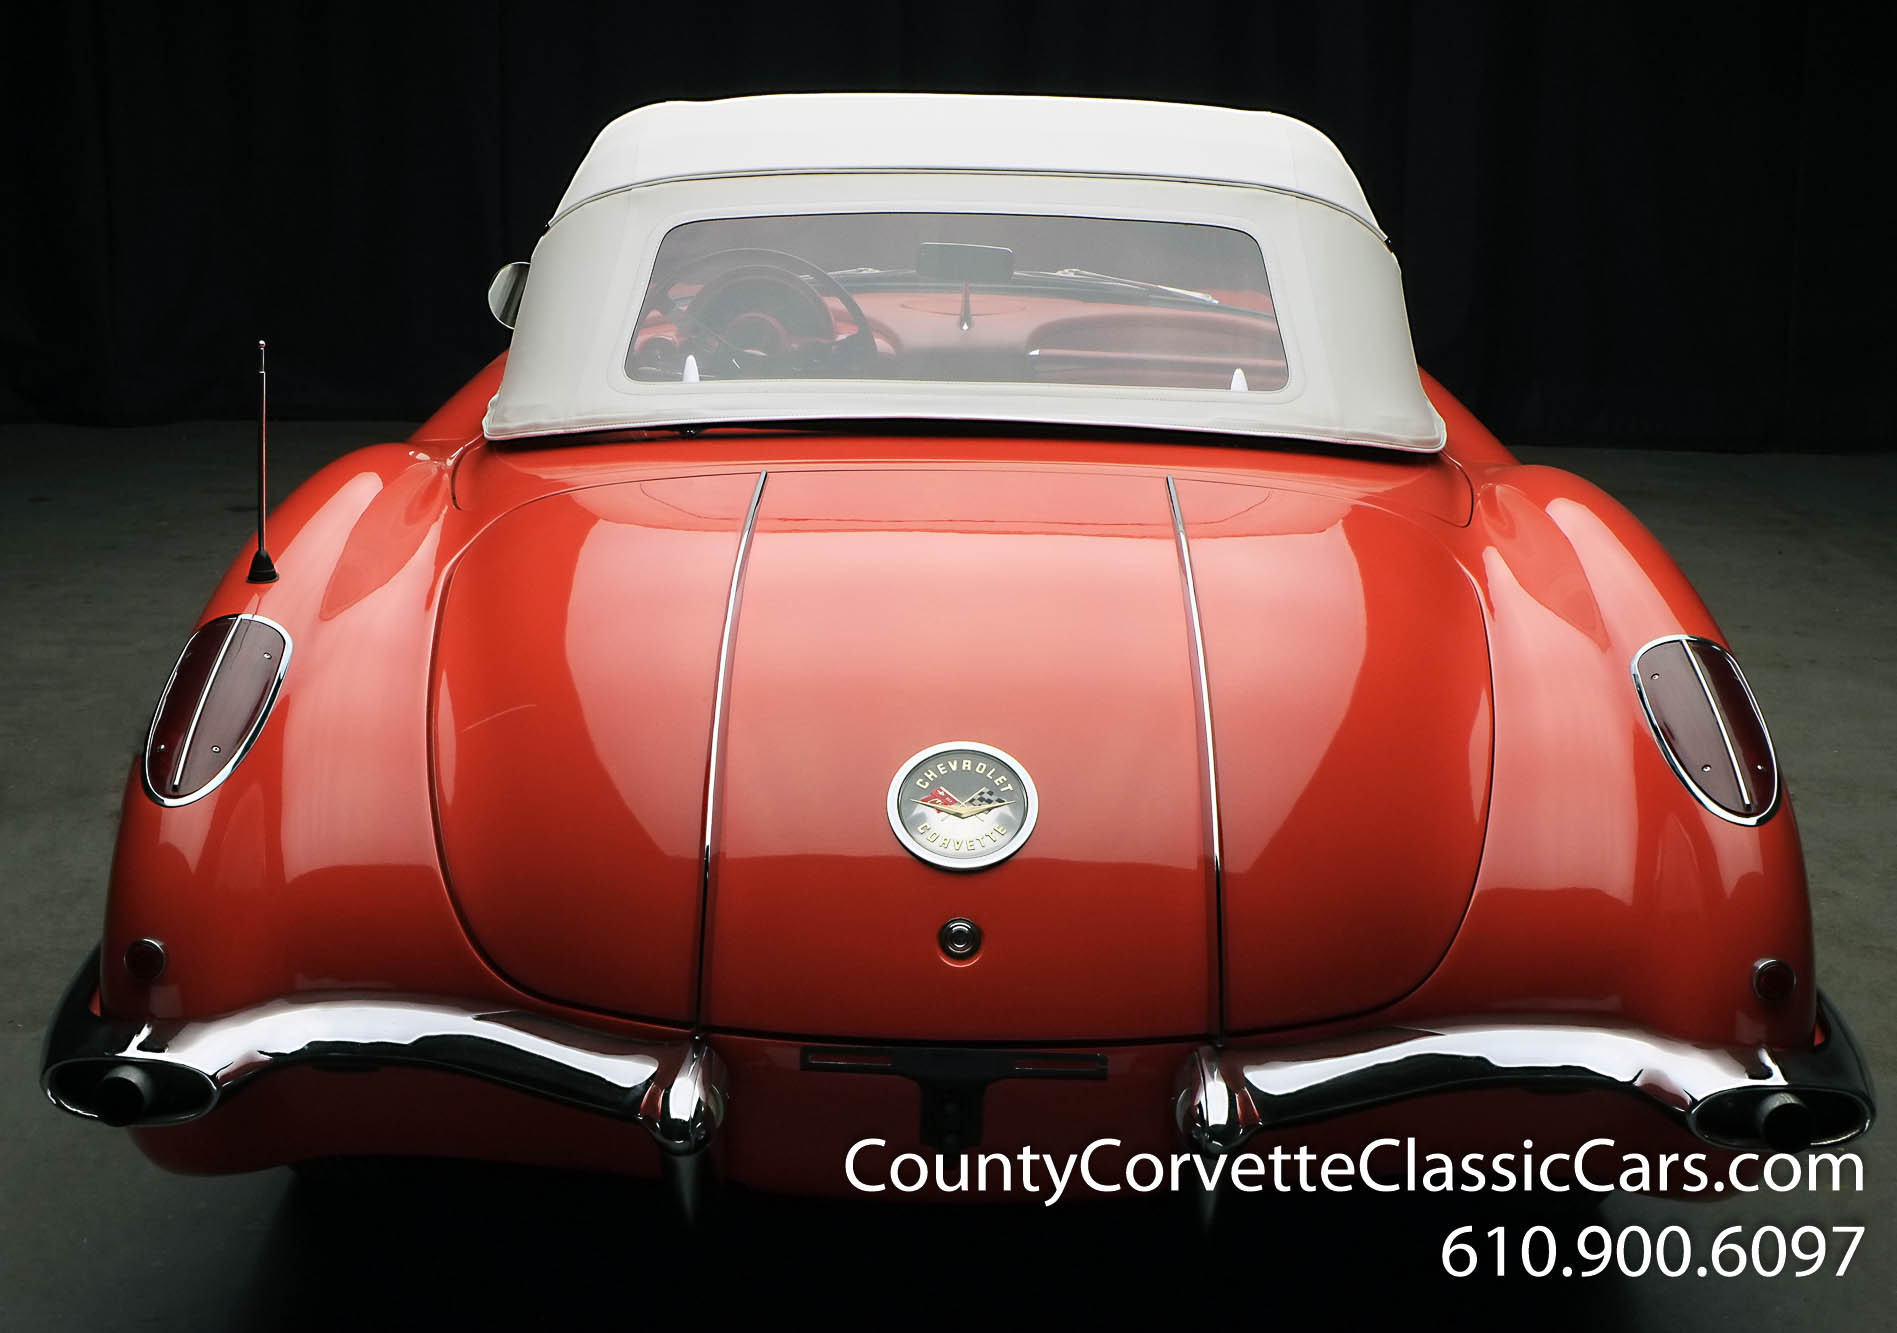 1958-Corvette-Convertible (33 of 62).jpg